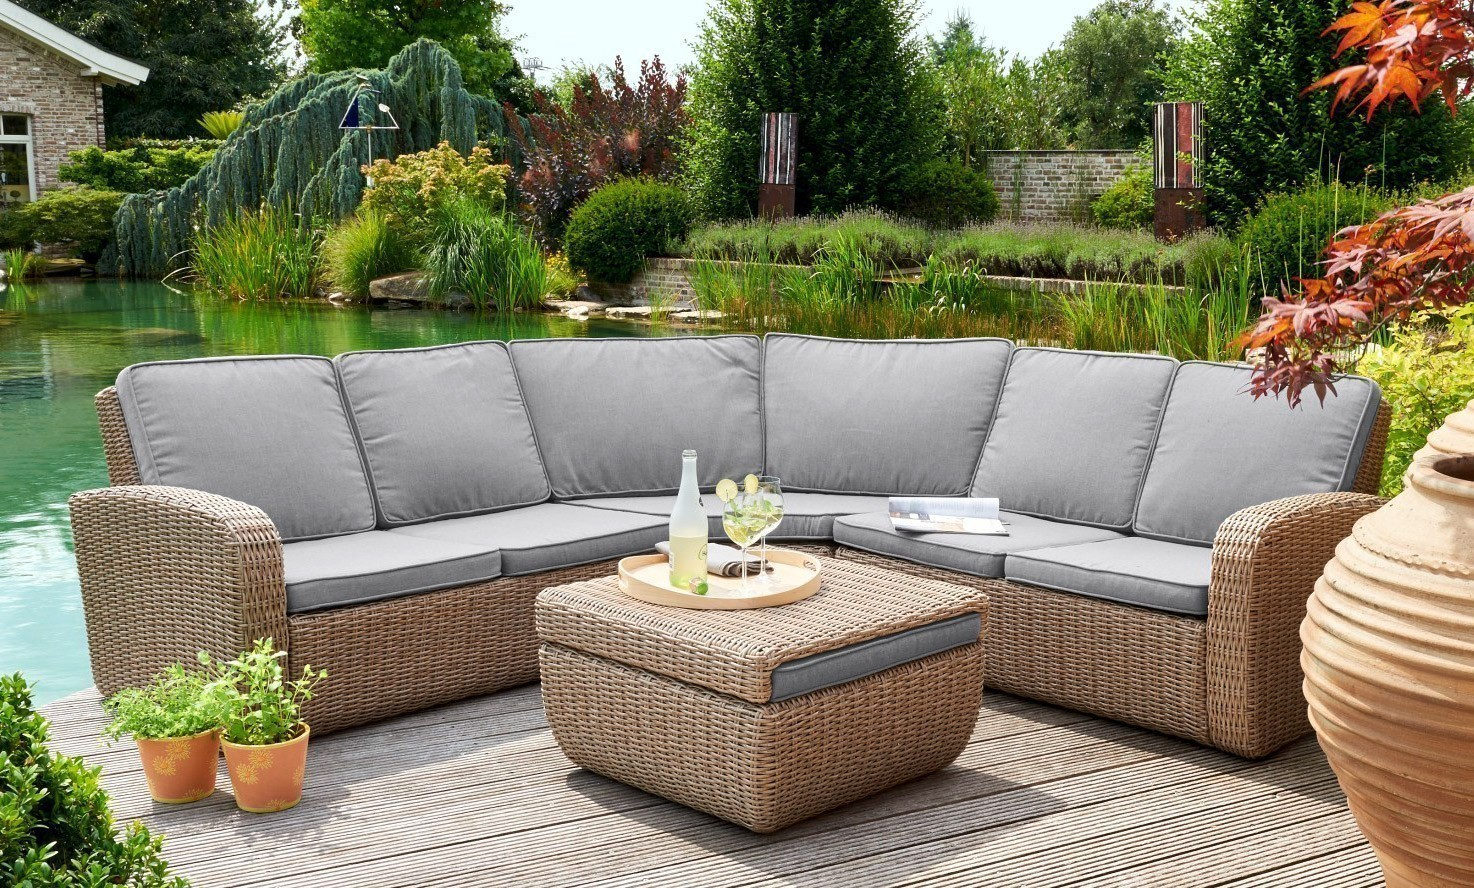 gartenm bel lounge set new york greenmotion polyrattan braun bei. Black Bedroom Furniture Sets. Home Design Ideas